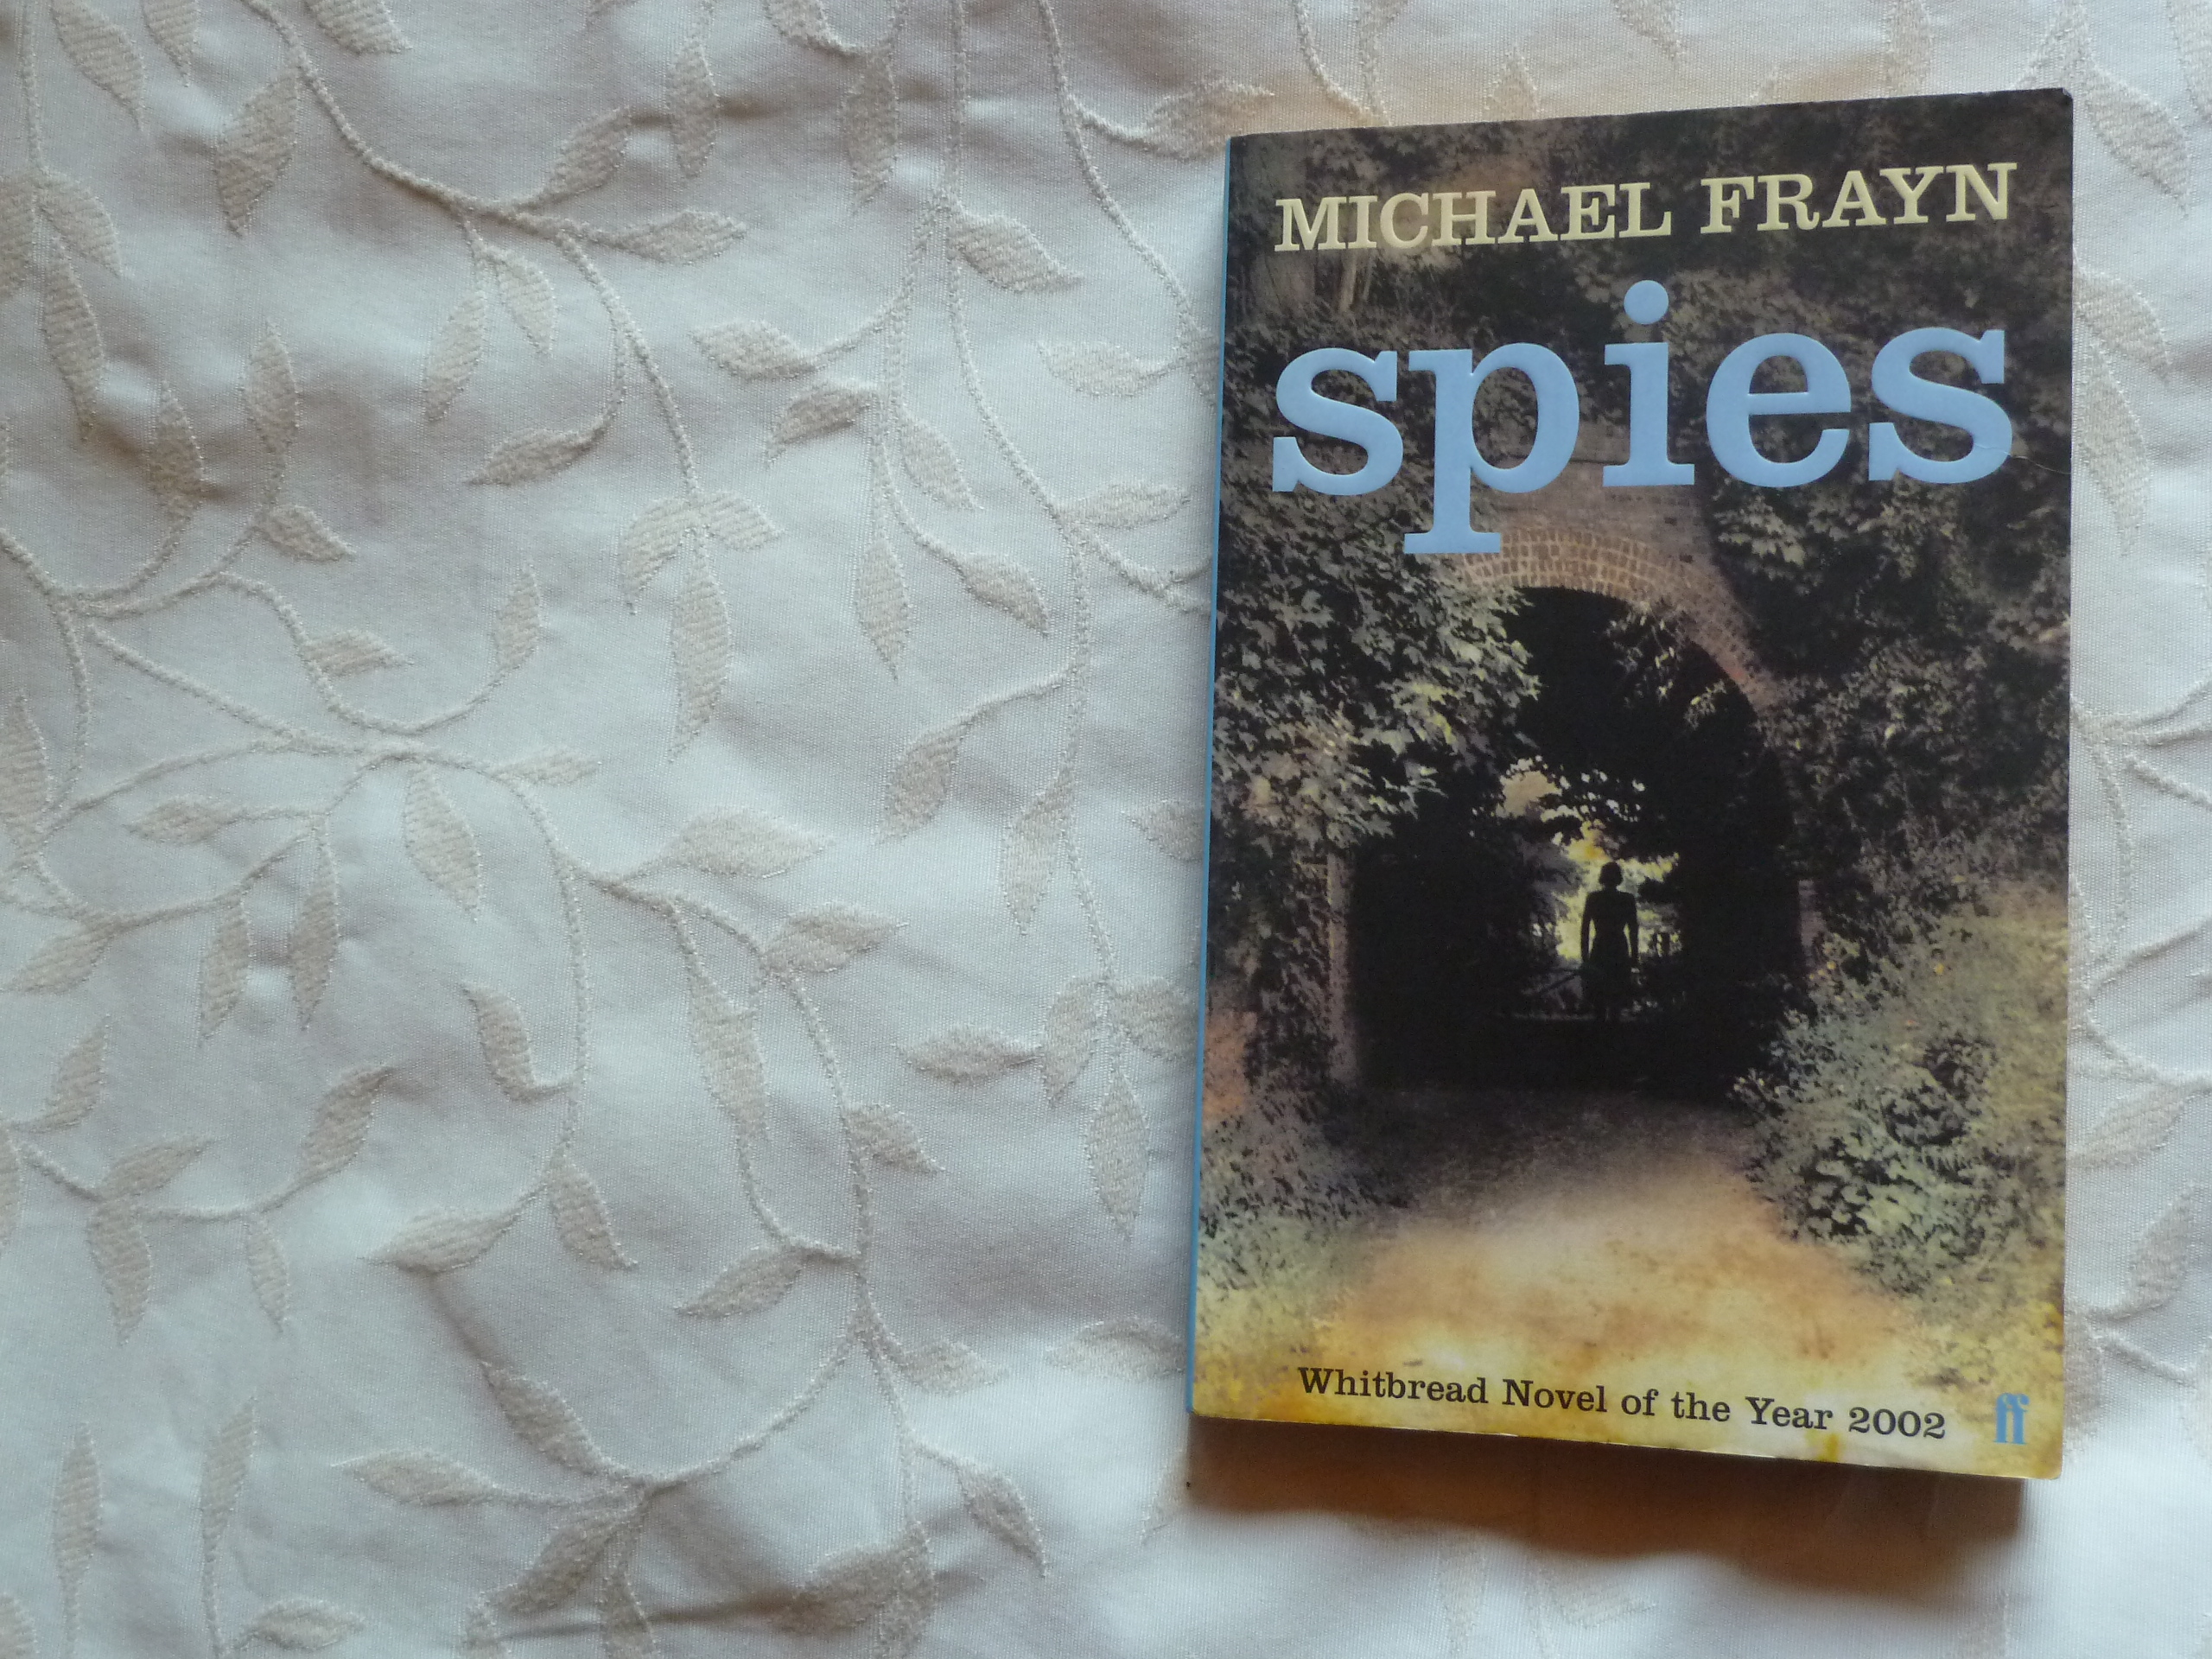 spies by michael frayn Spies by micheal frayn chapter 1 the narrator, an old stephen wheatley, struggles to place a scent that prompts a strange, uneasy feeling in him each year.